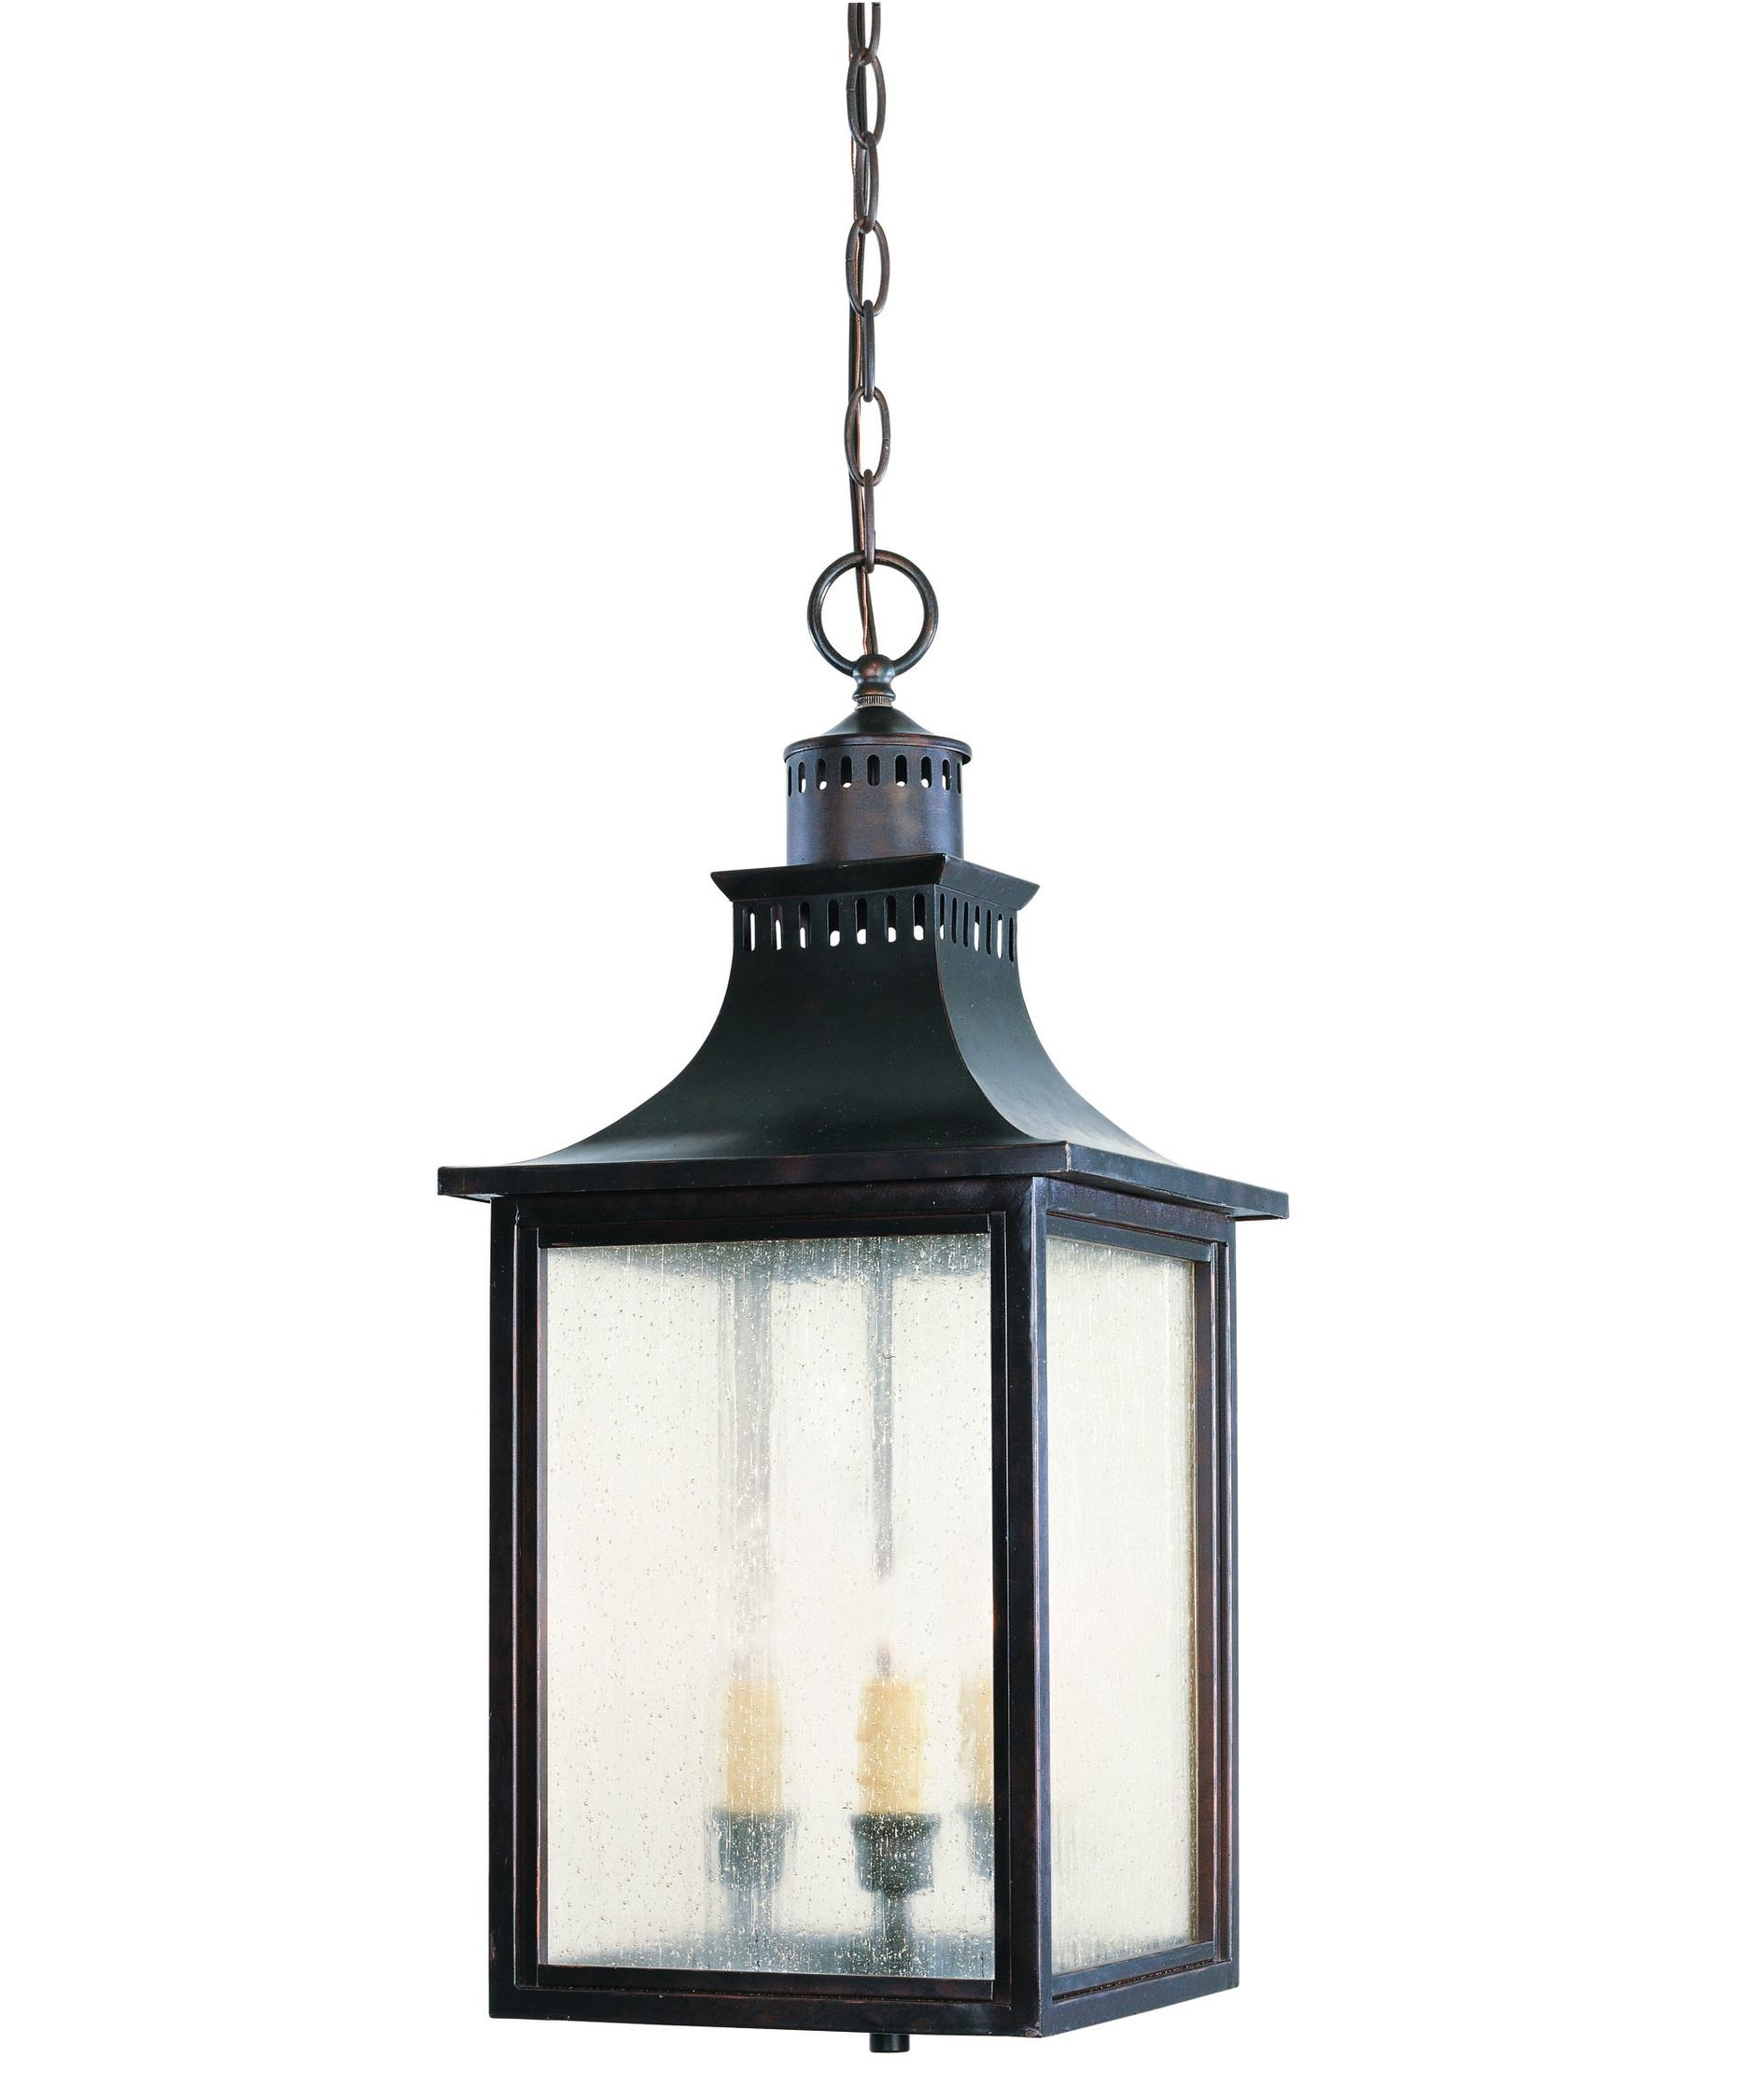 Savoy House 5 256 Monte Grande 10 Inch Wide 3 Light Outdoor Hanging With Outdoor Weather Resistant Lanterns (View 14 of 20)